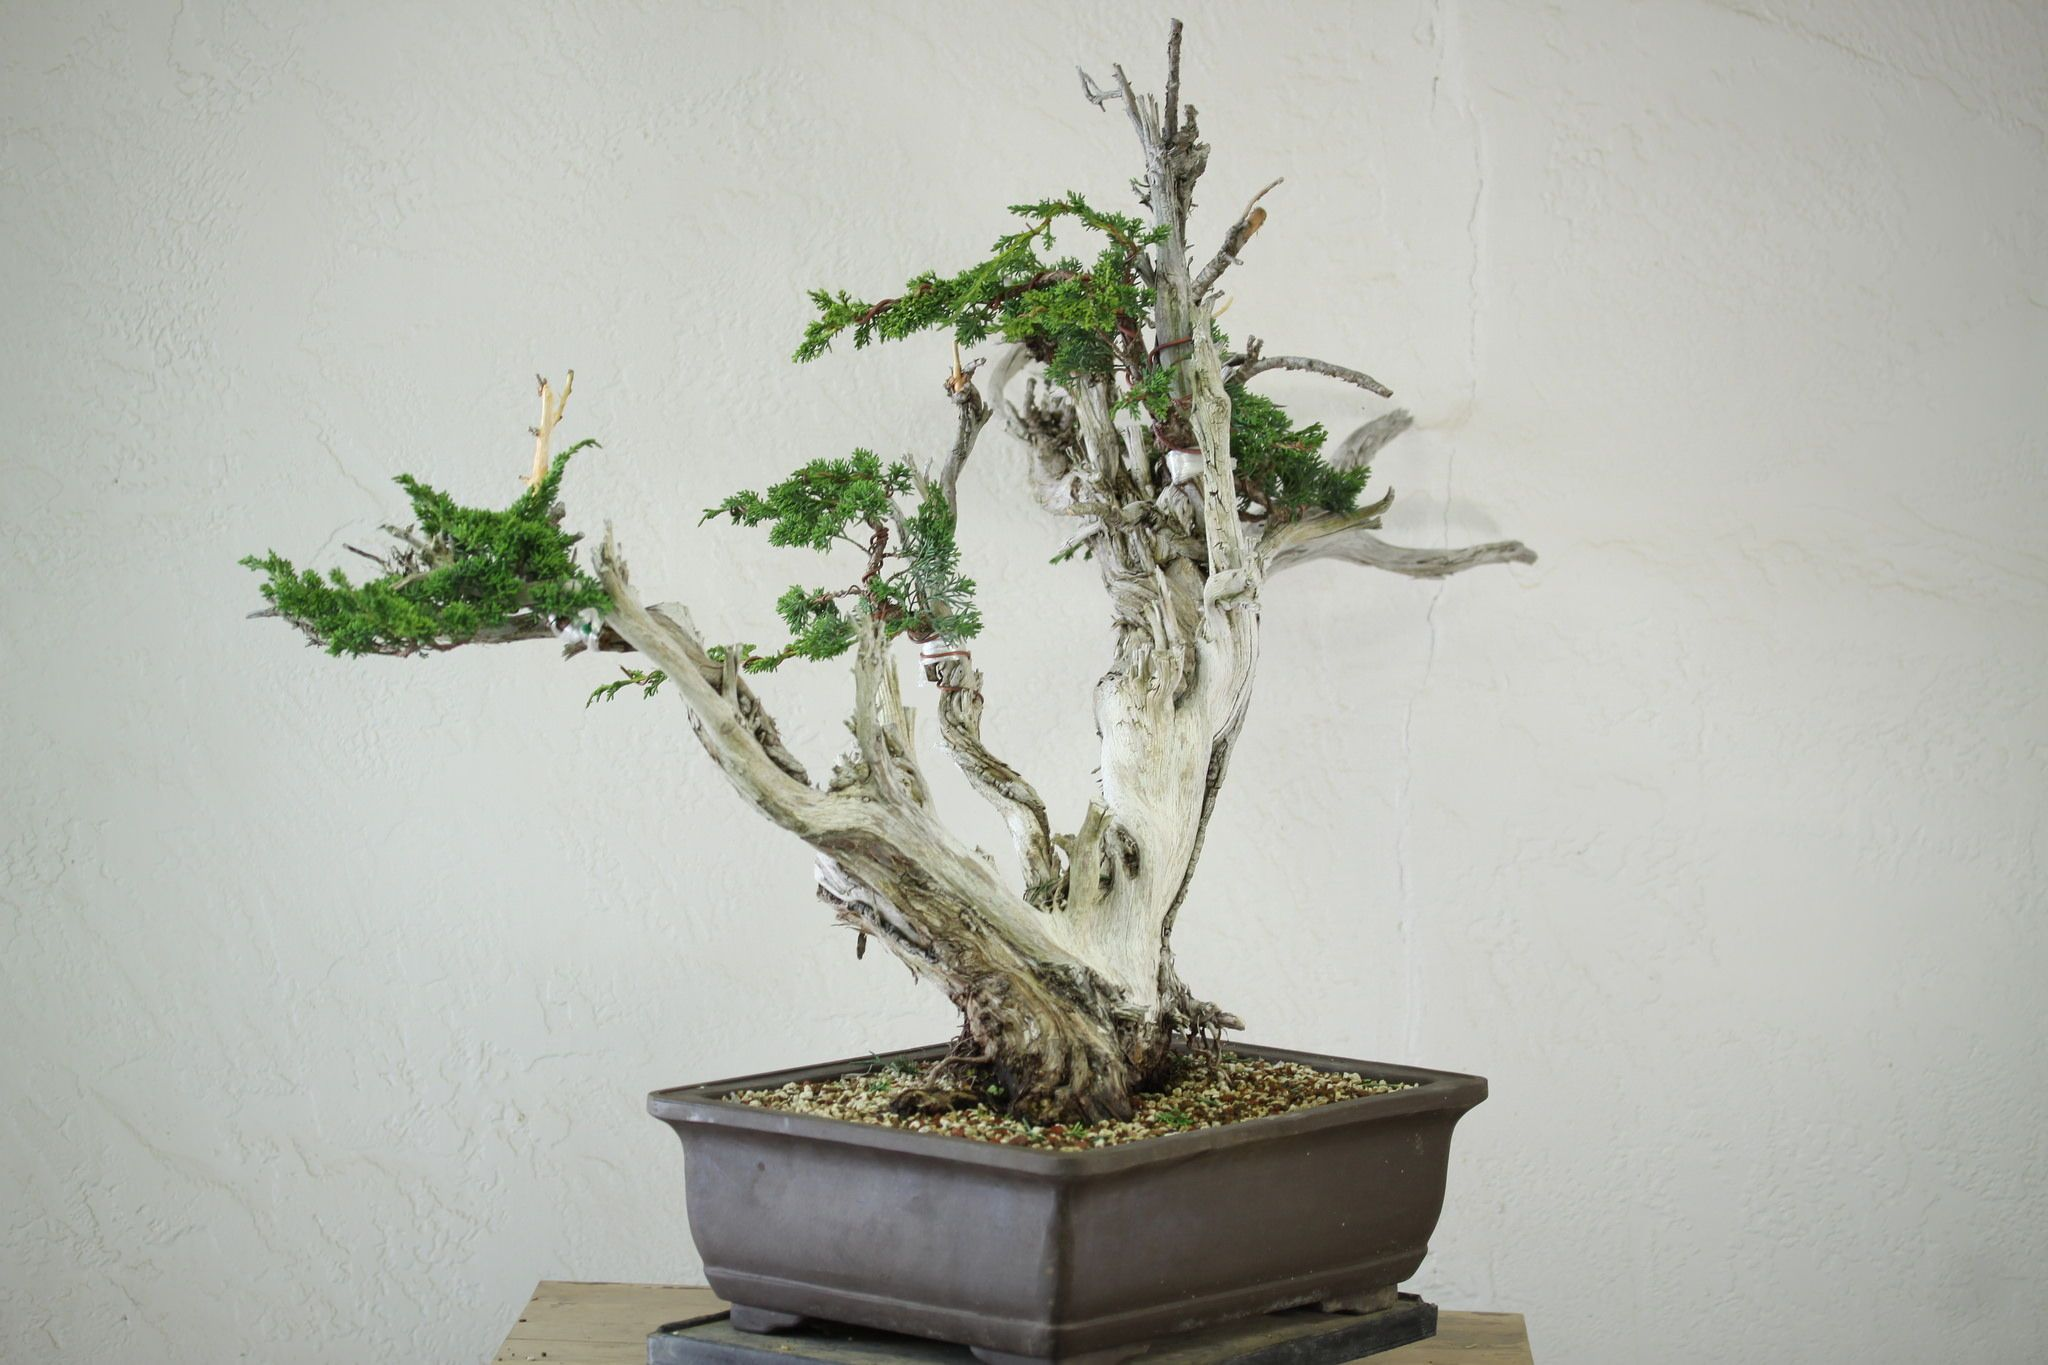 bonsai tree care learn how to grow prune and care for bonsai trees